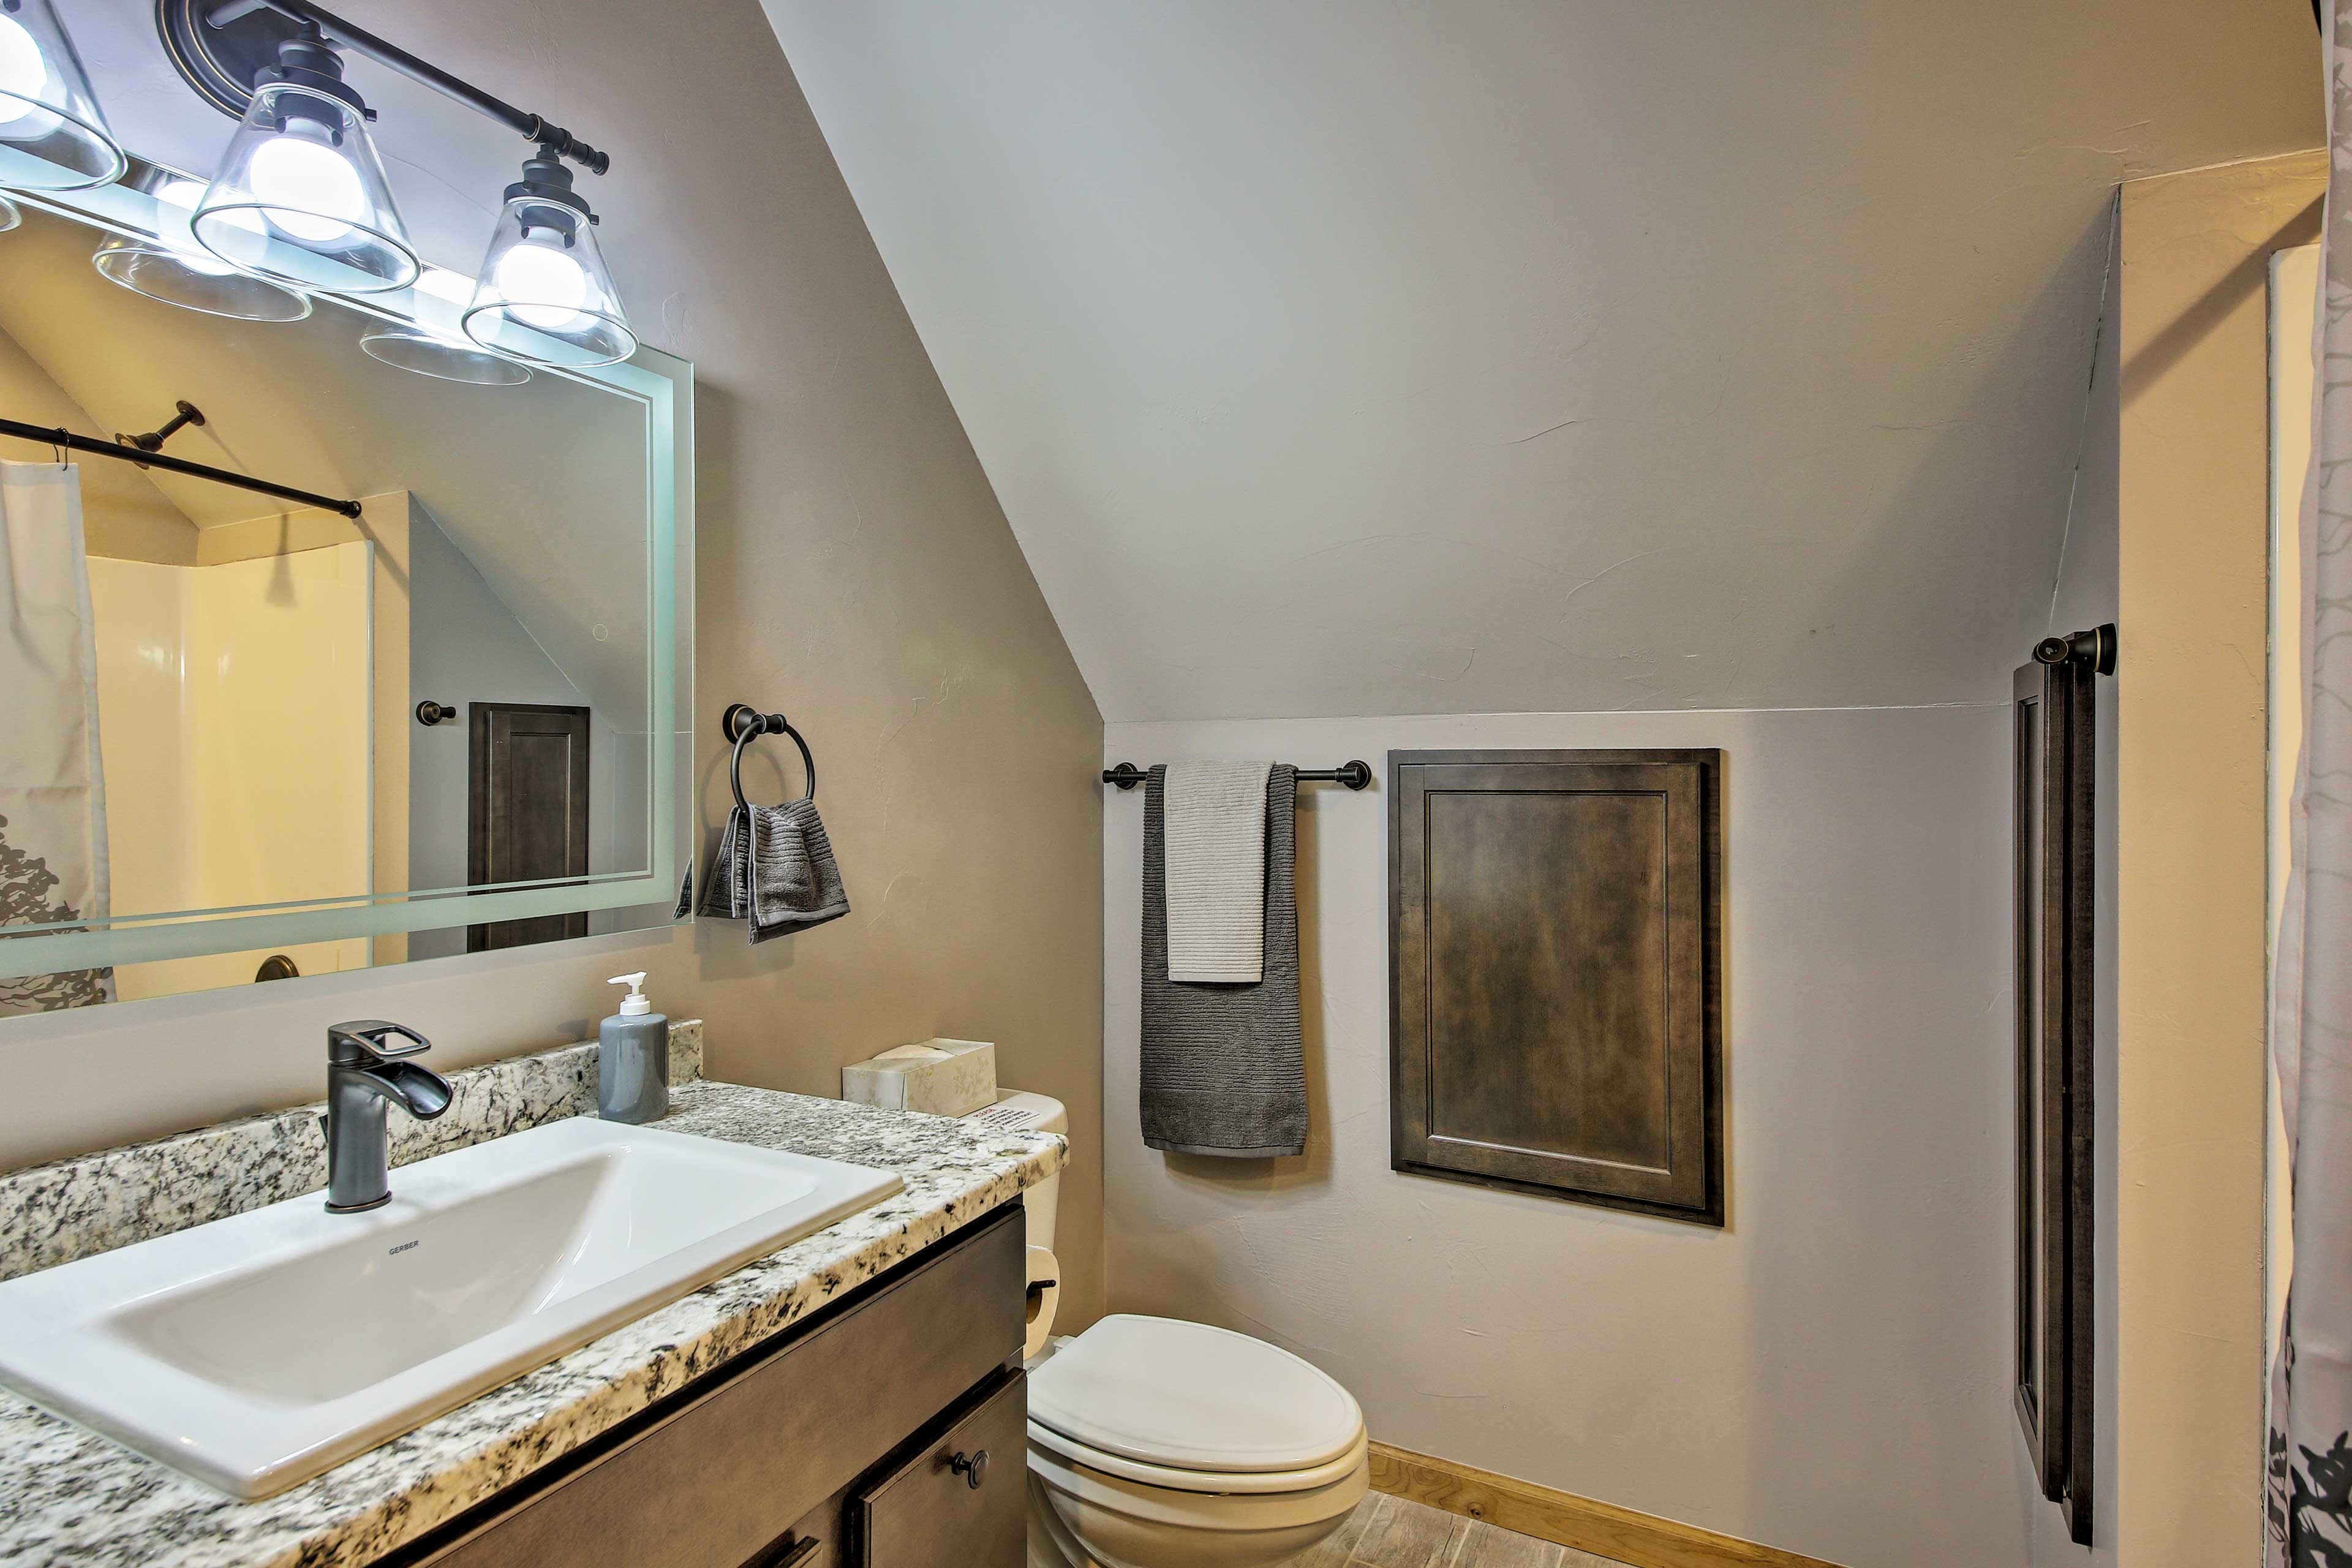 The second full bathroom includes a shower/tub combo.